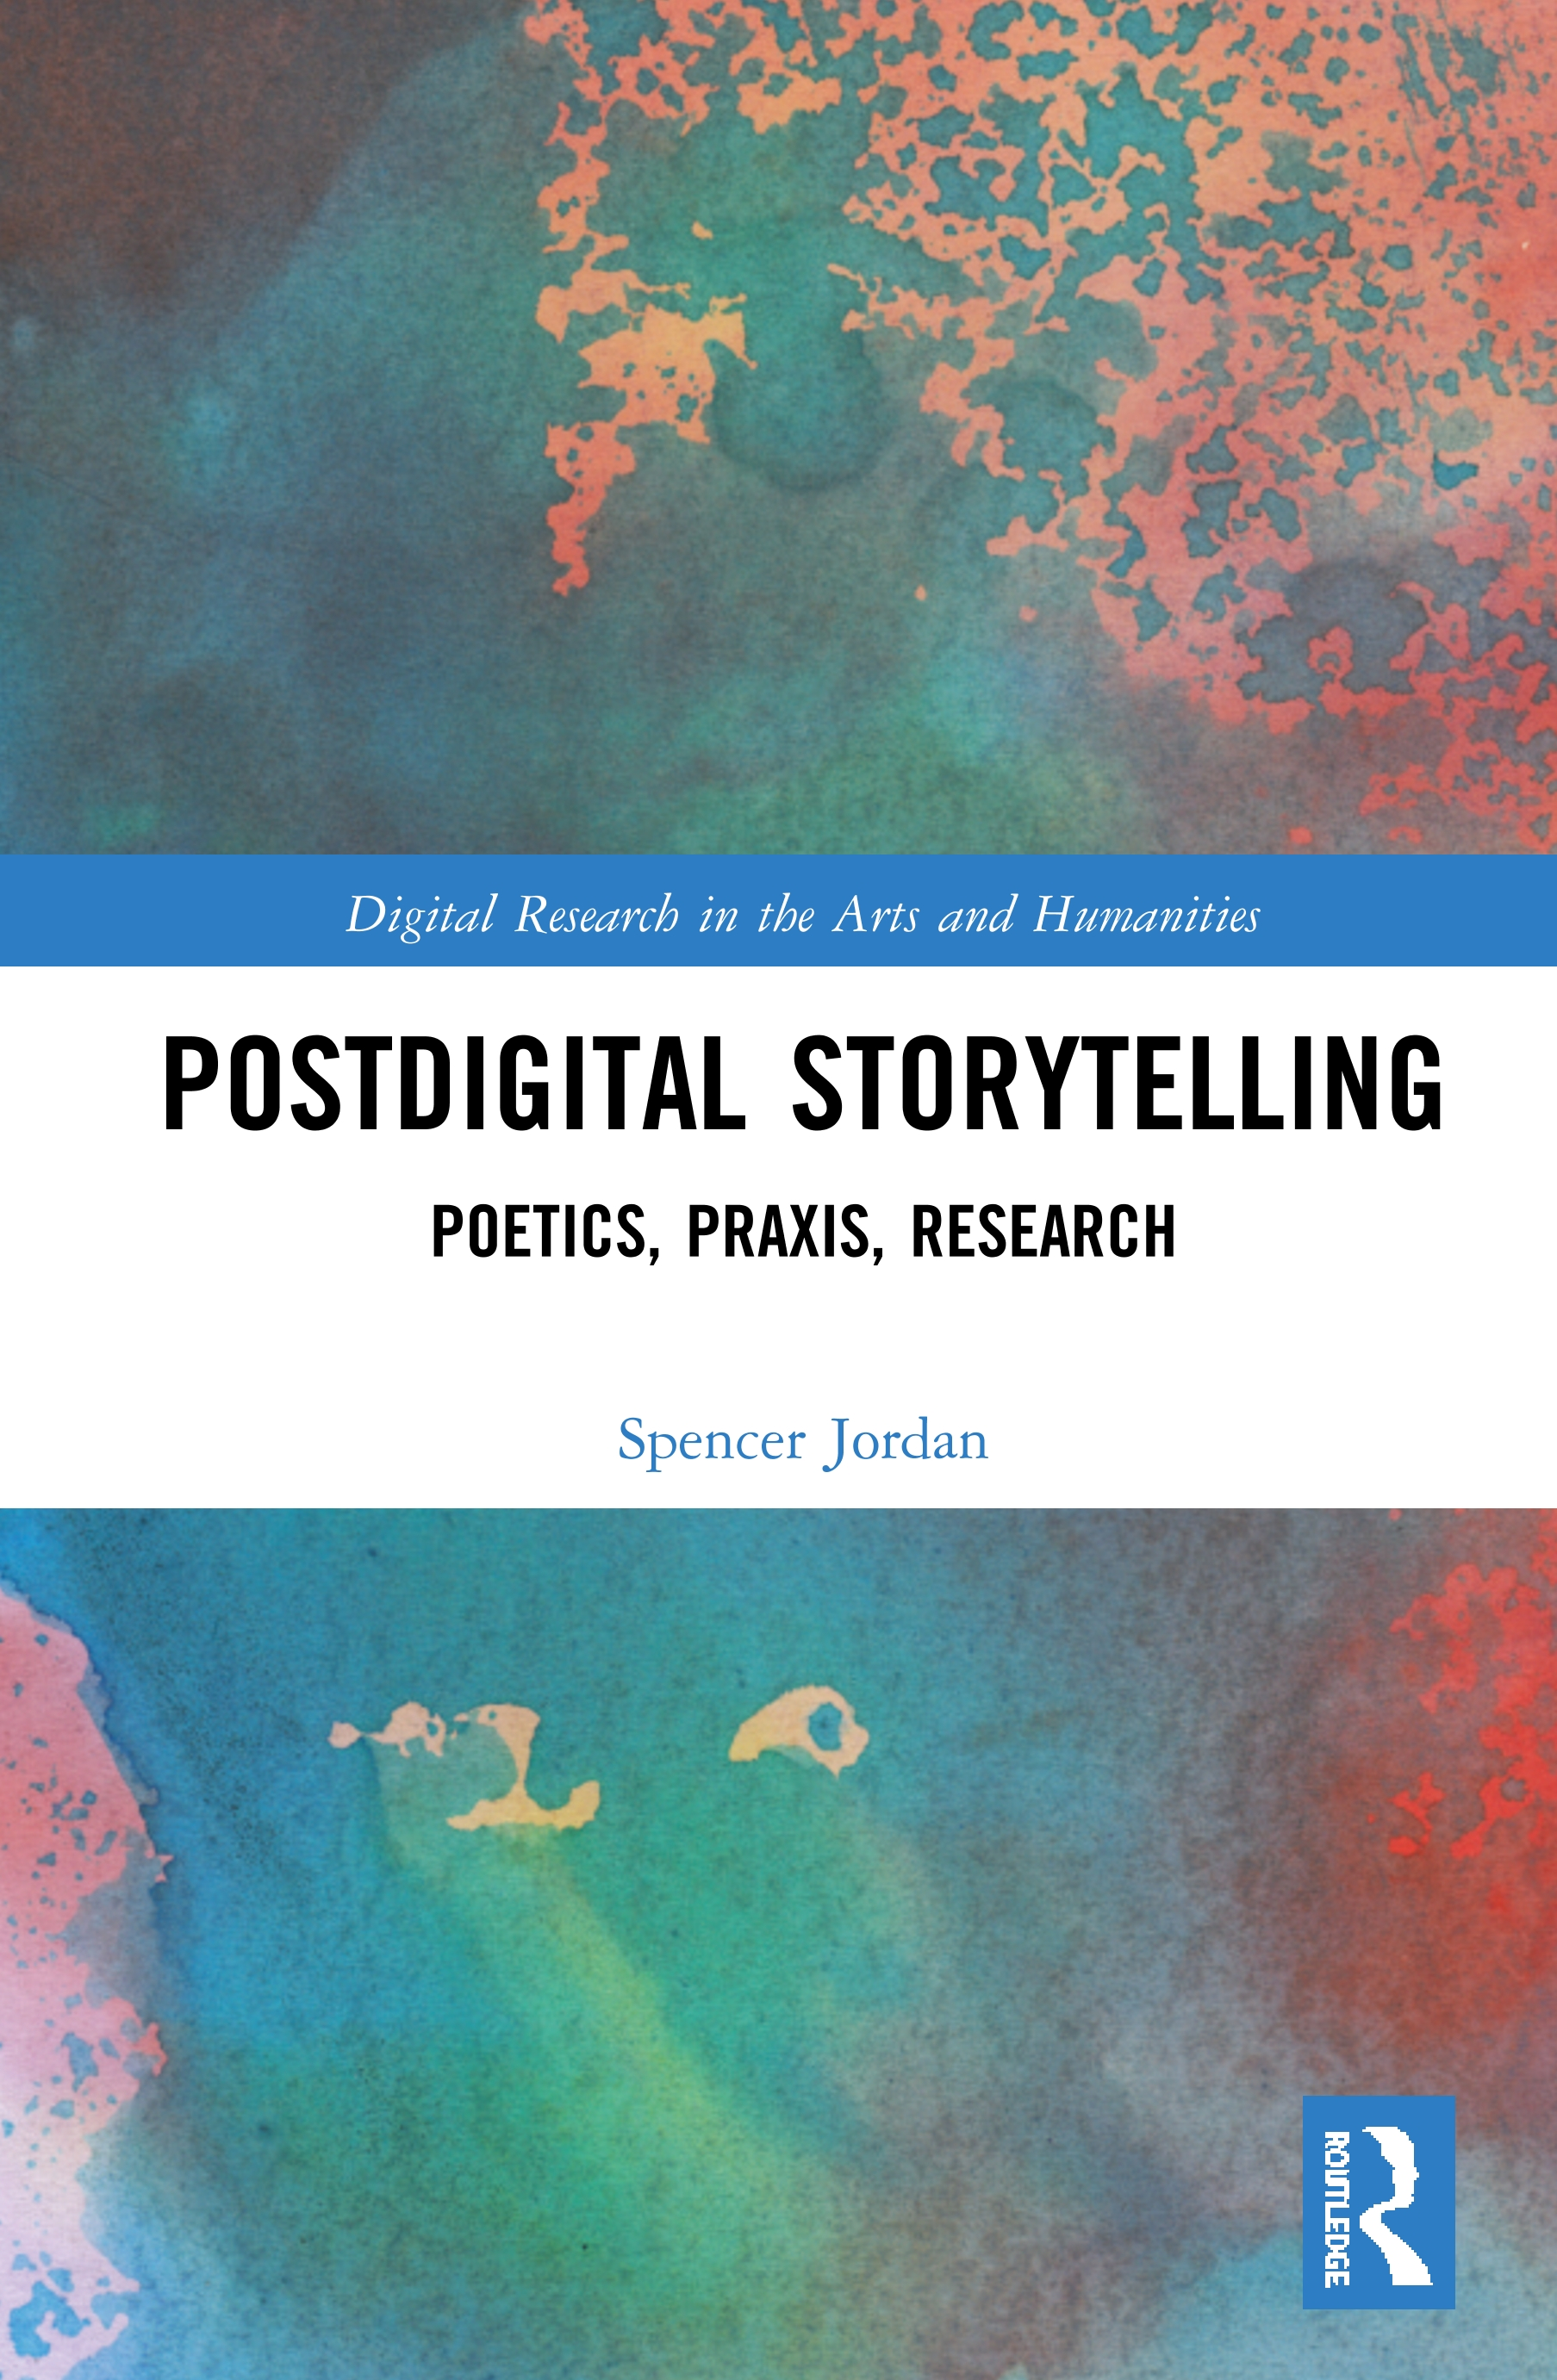 Postdigital Storytelling: Poetics, Praxis, Research book cover